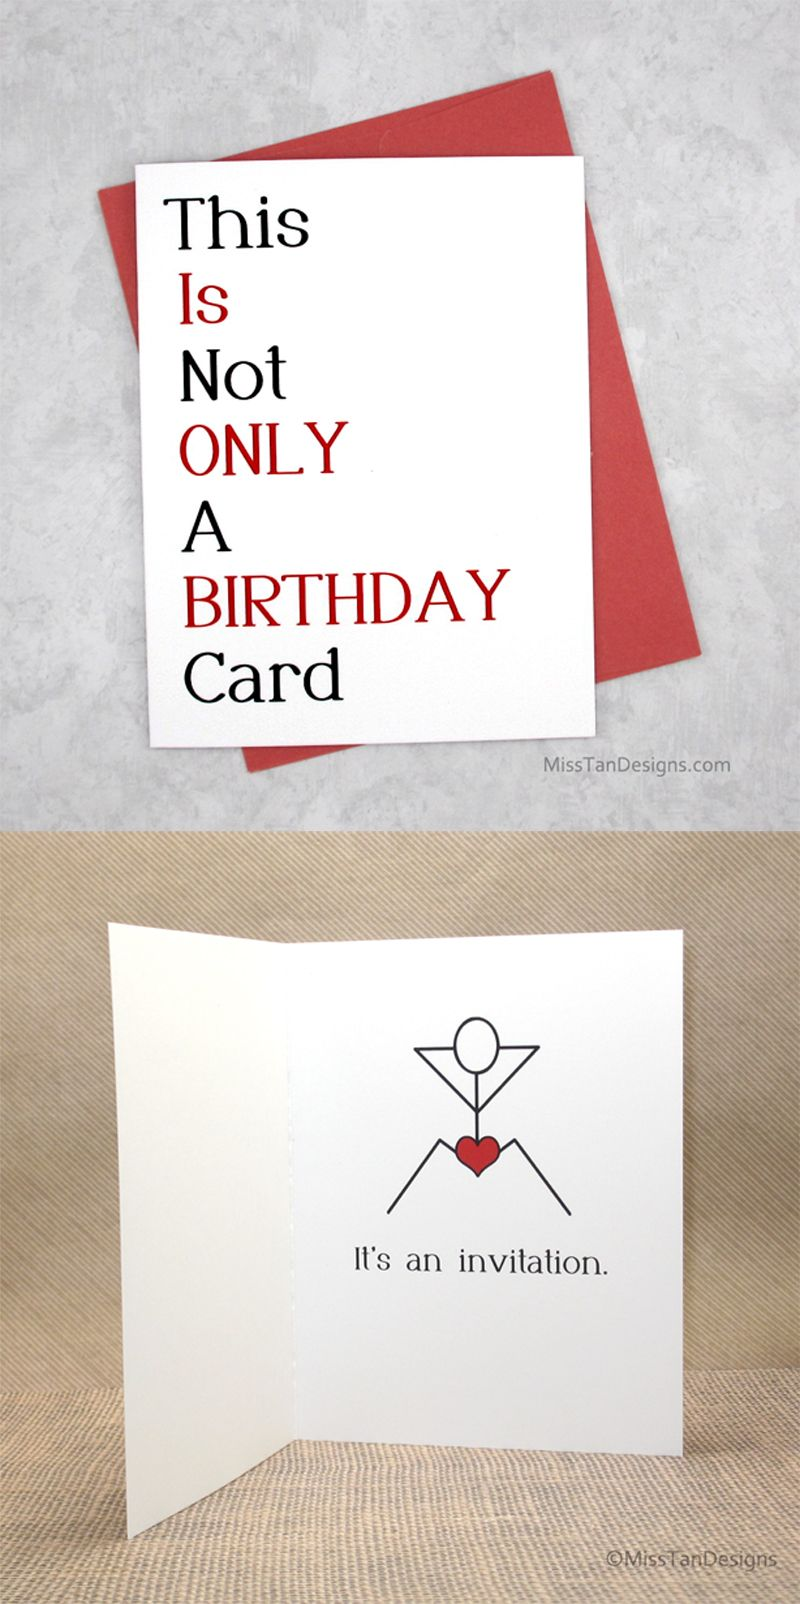 Boyfriend Birthday Cards Not Only Funny Gift Sexy